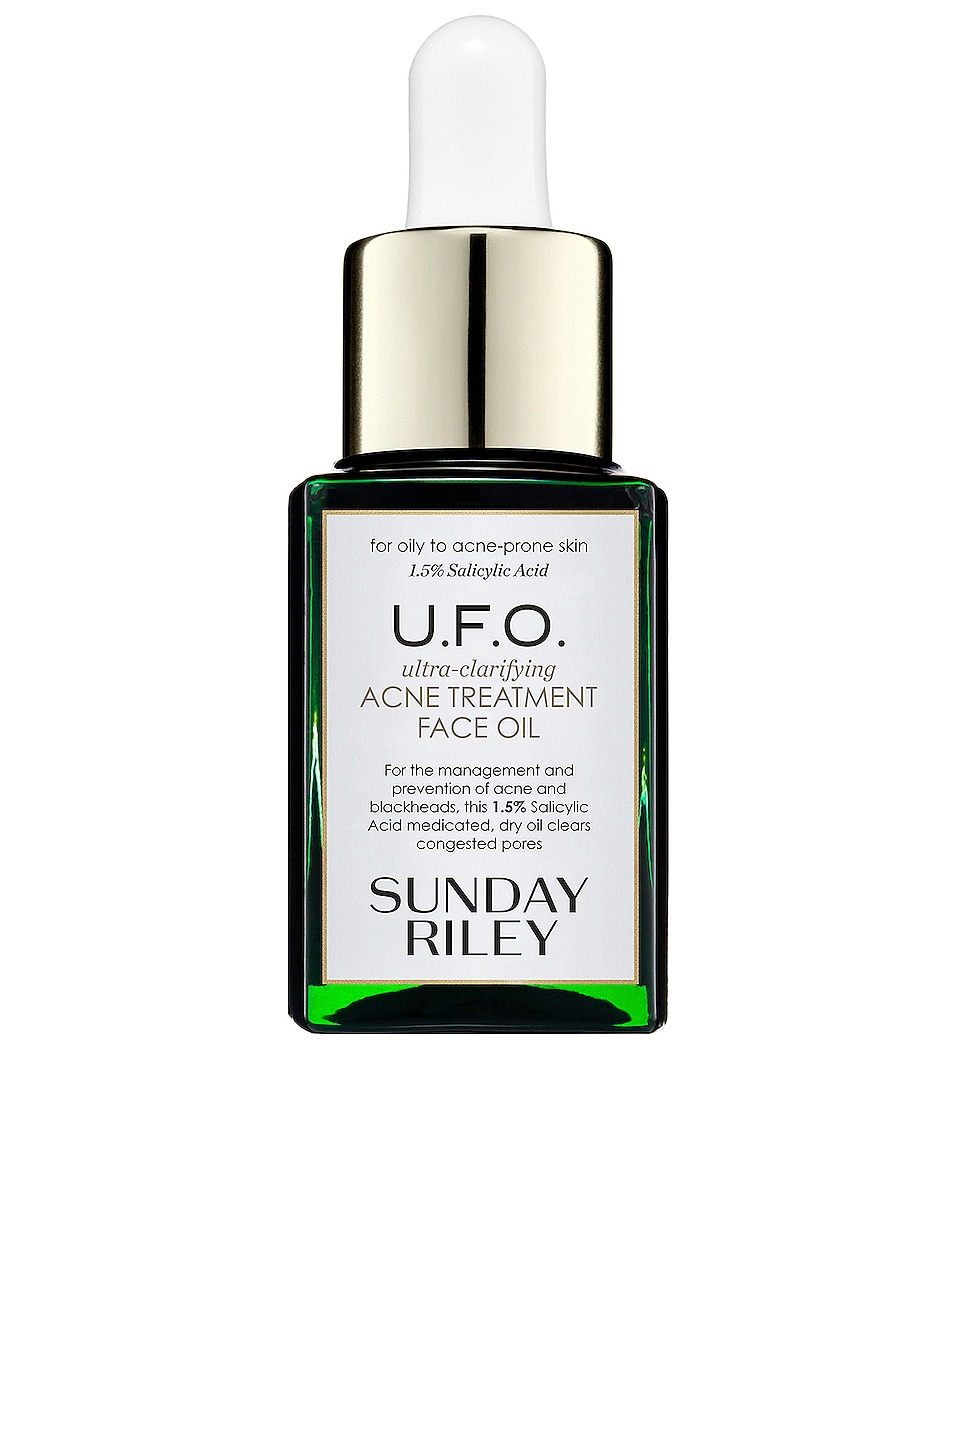 Sunday Riley ACEITE DE LA CARA TRAVEL U.F.O. ULTRA-CLARIFYING FACE OIL